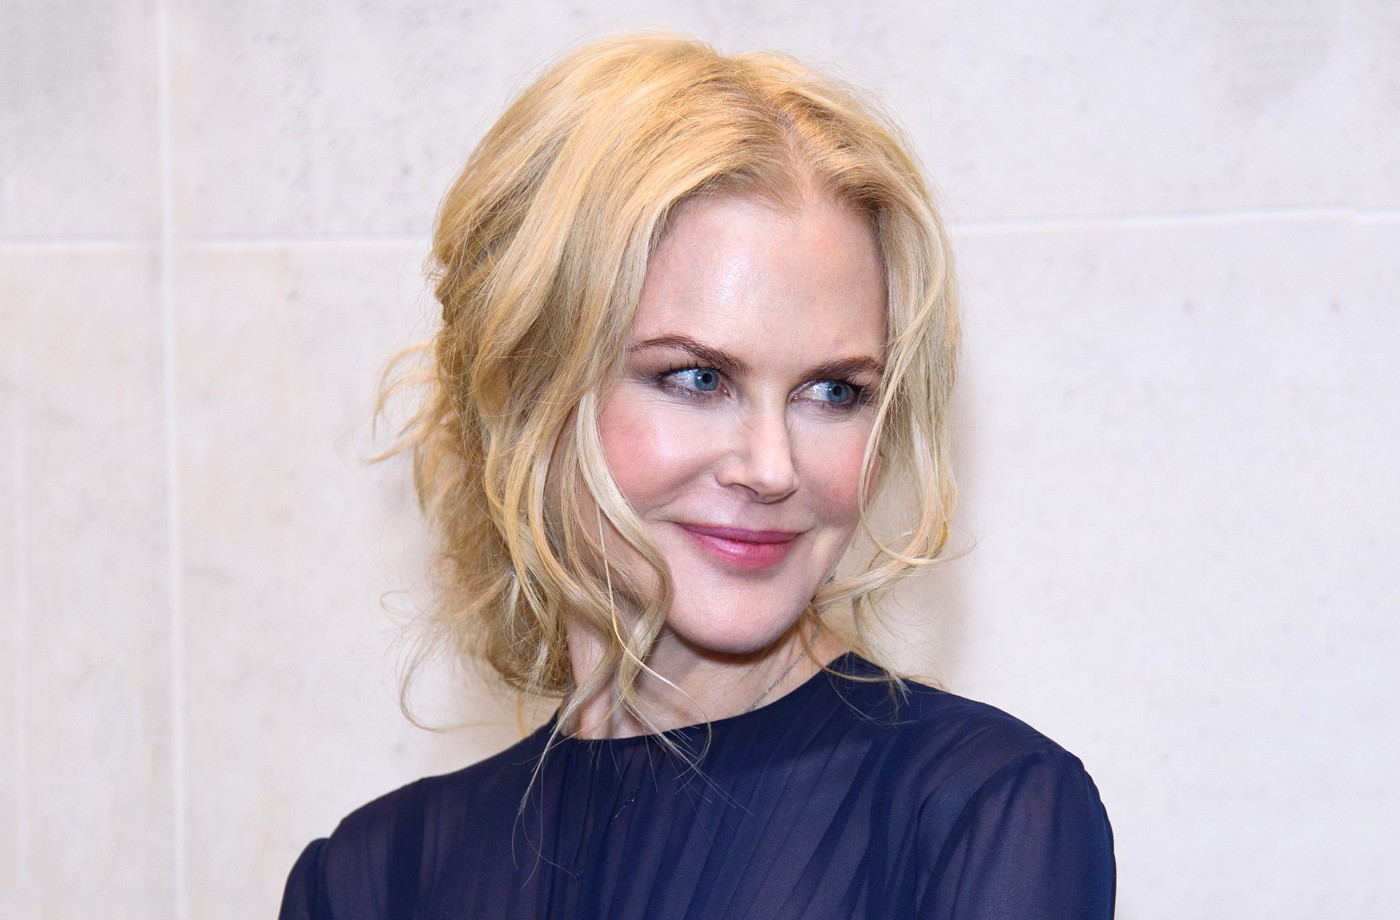 Nicole Kidman and Keith Urban have a morning ritual, and it's honestly so adorable